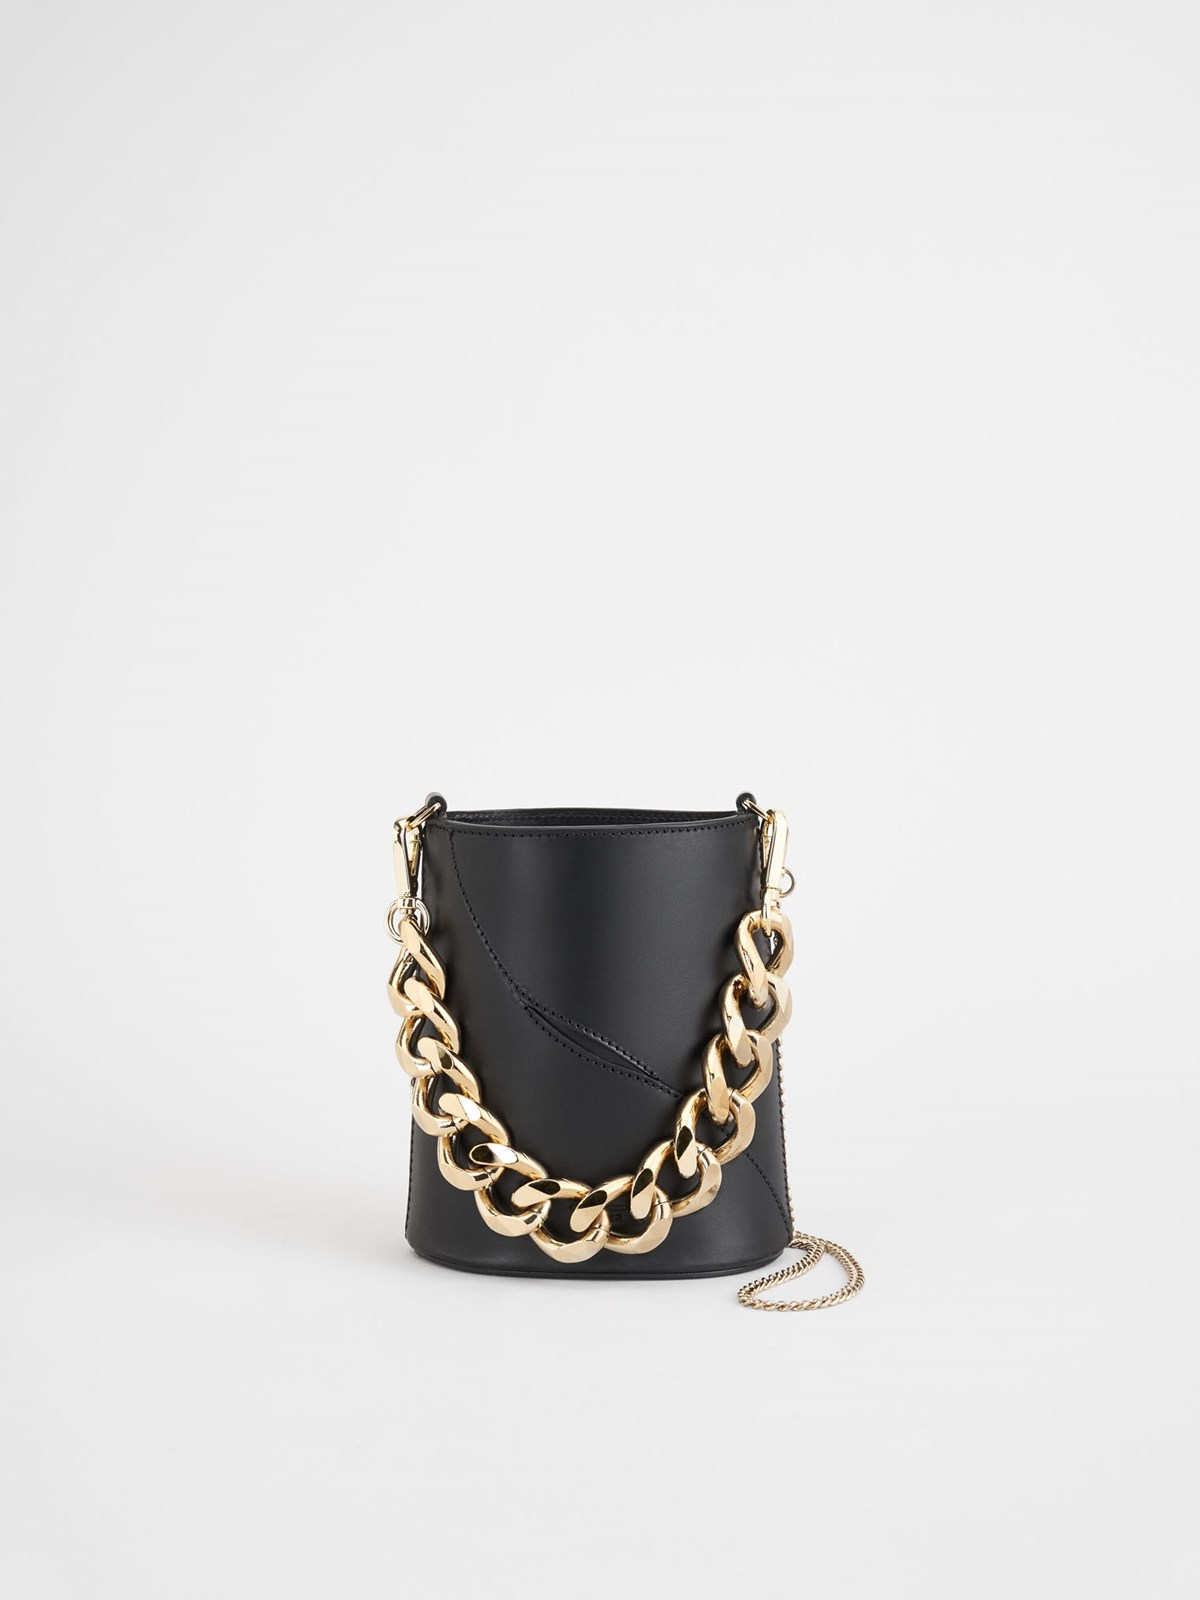 Faeto Black Small Bucket Bag